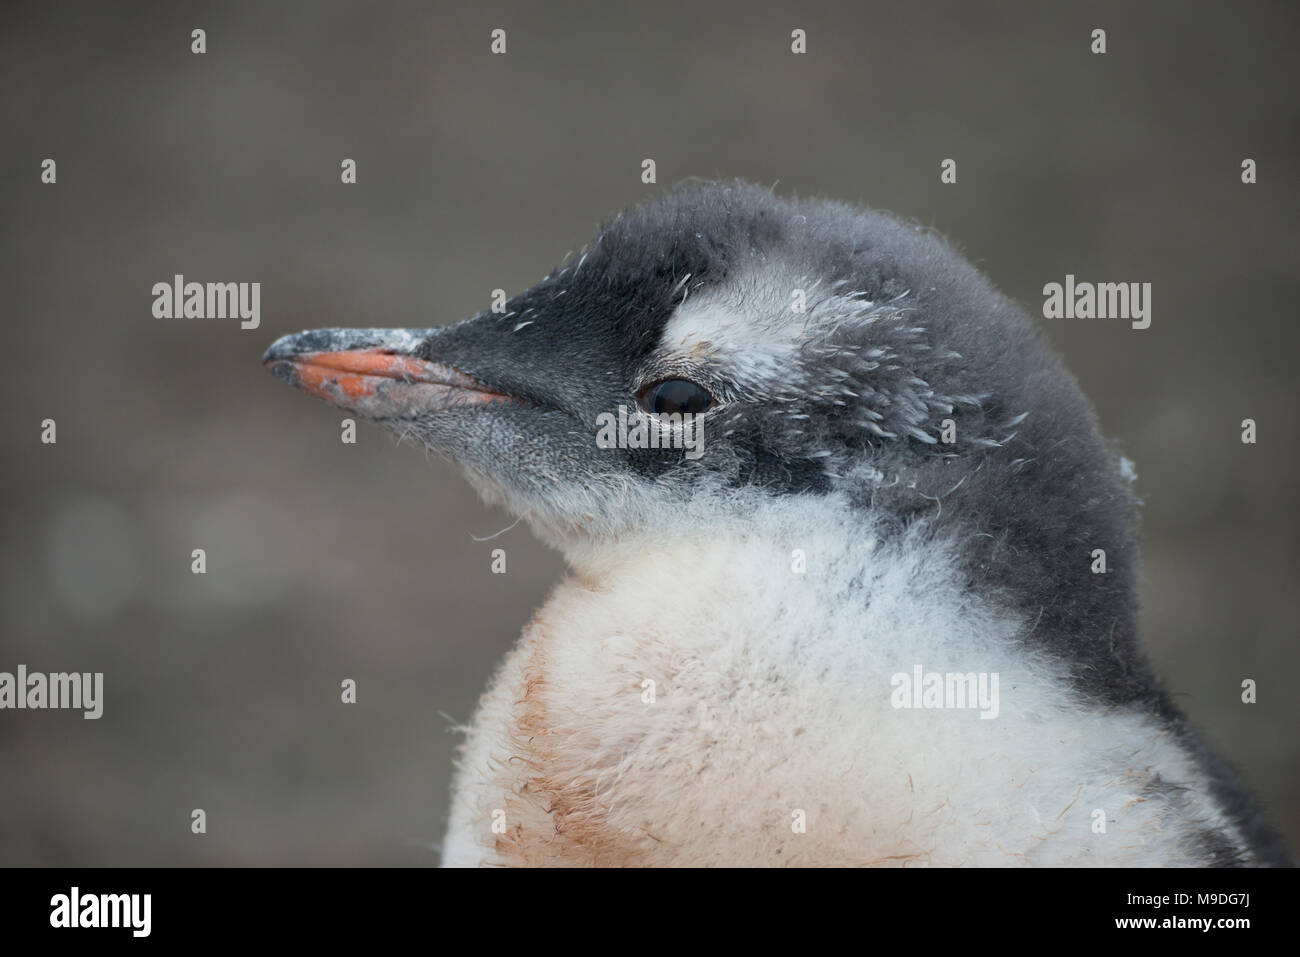 A Gentoo Penguin chick, mid molt motionless on a rocky surface in Antarctica Stock Photo